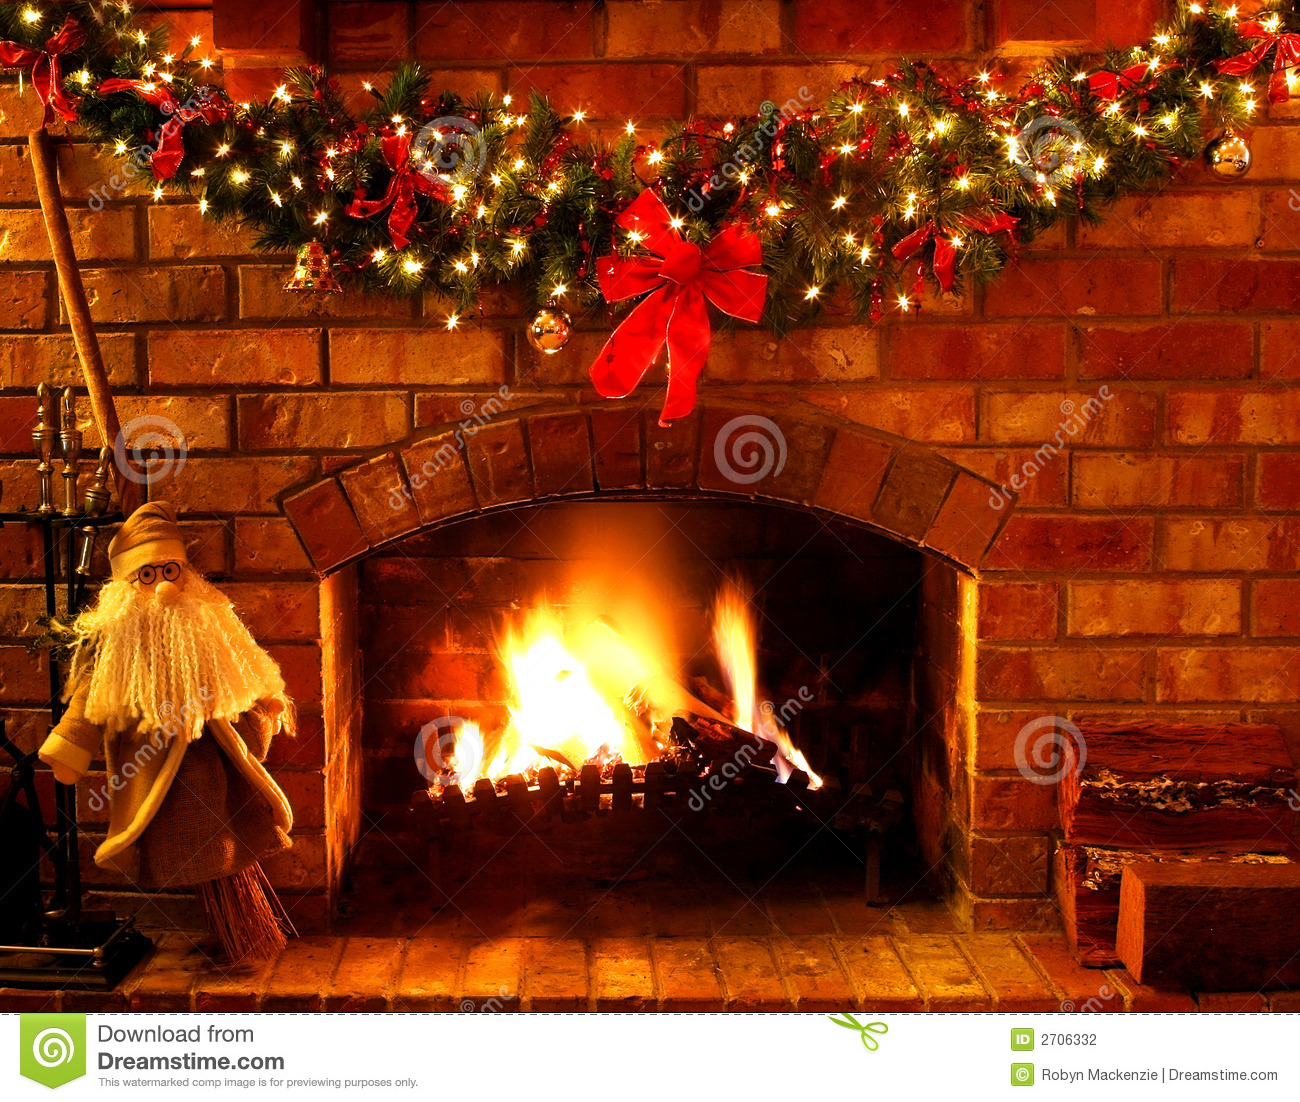 Christmas Fireplace Wallpaper Animated Christmas Fireplace Stock Photo Image Of Winter Festive